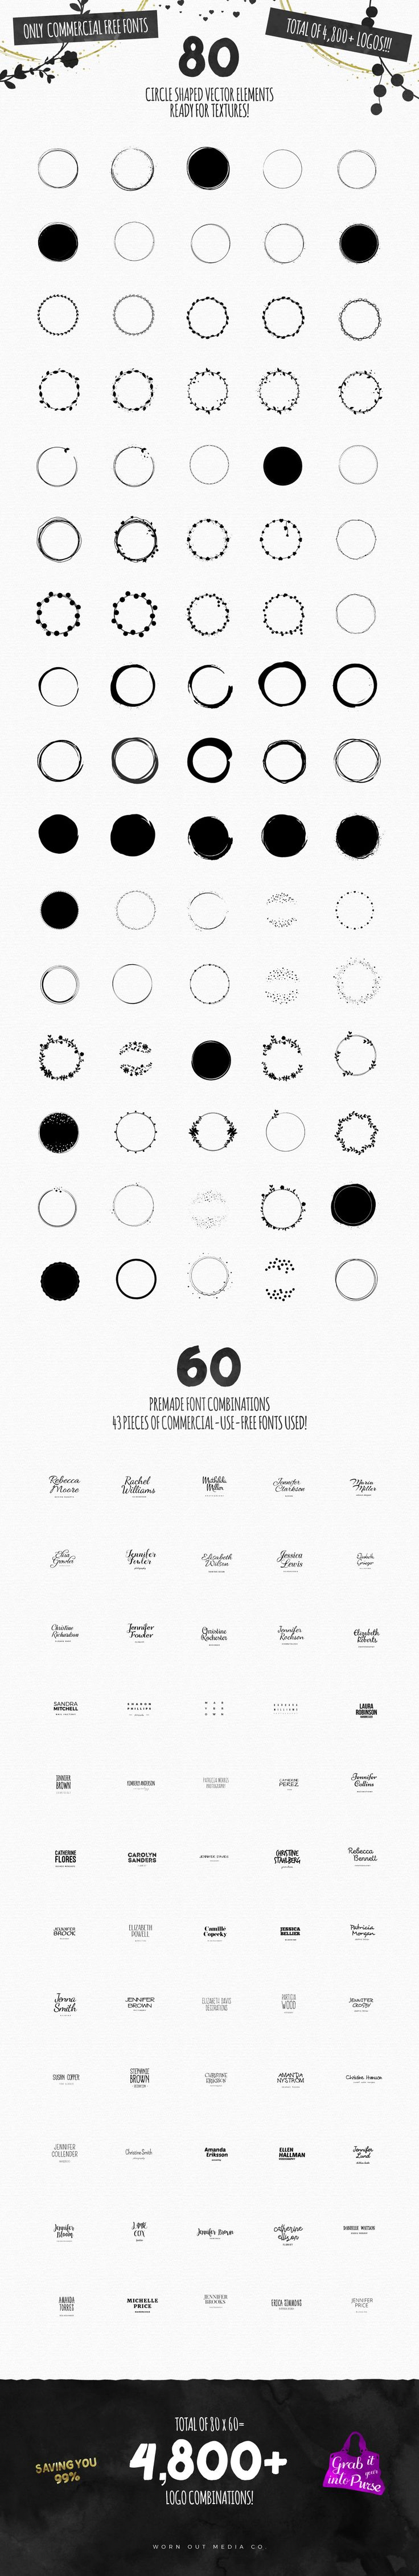 Branding resources comes with commercial license! / Feminine Logo Creator Circle Edition by Worn Out Media Co. on Creative Market